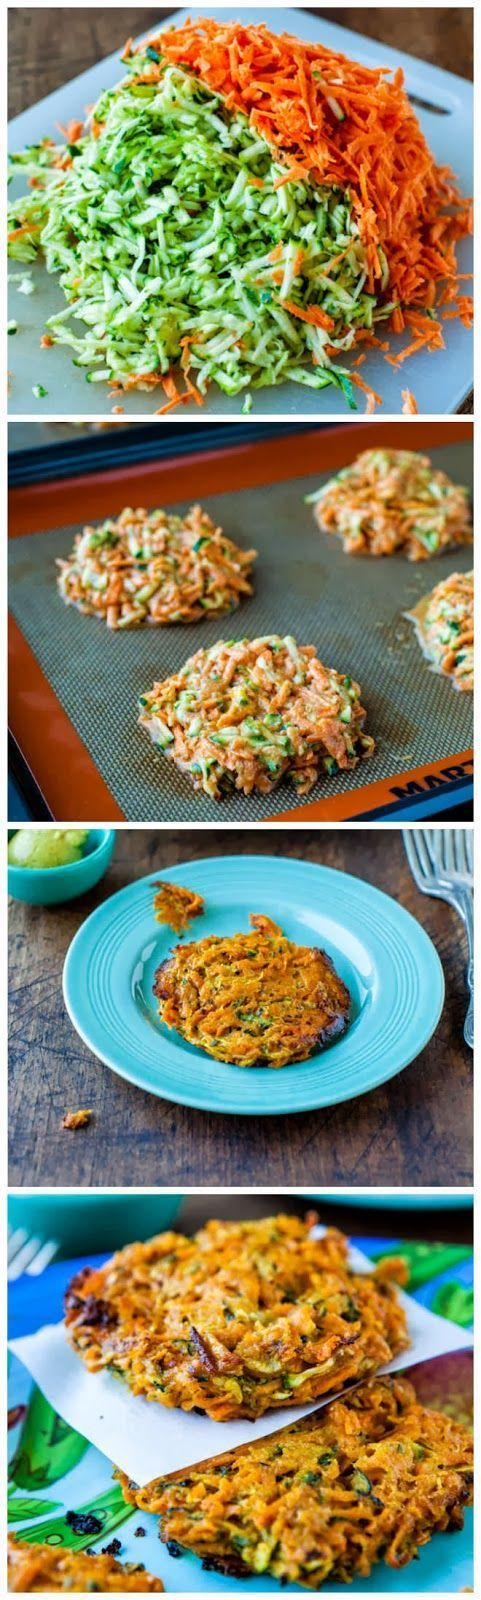 Baked Chipotle Sweet Potato and Zucchini Fritters & Homemade Spicy Honey Mustard - You don't have to fry these healthy fritters in gobs of oil. They're baked & a great way to work in extra veggies!